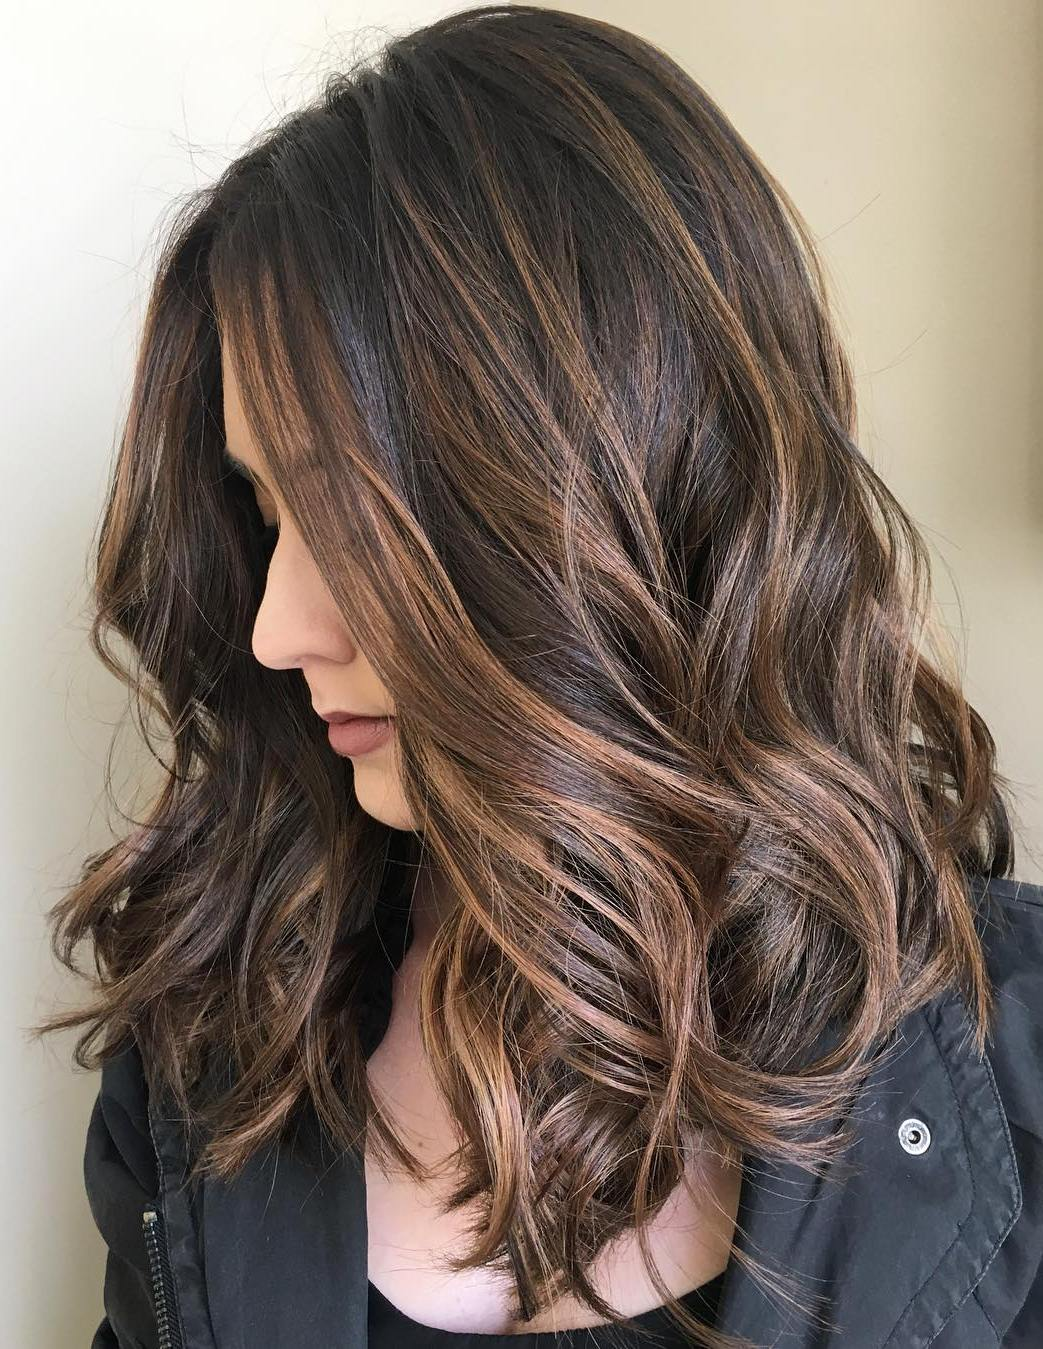 Balayage Hair Ideas for 2018 — The Right Hairstyles 2018